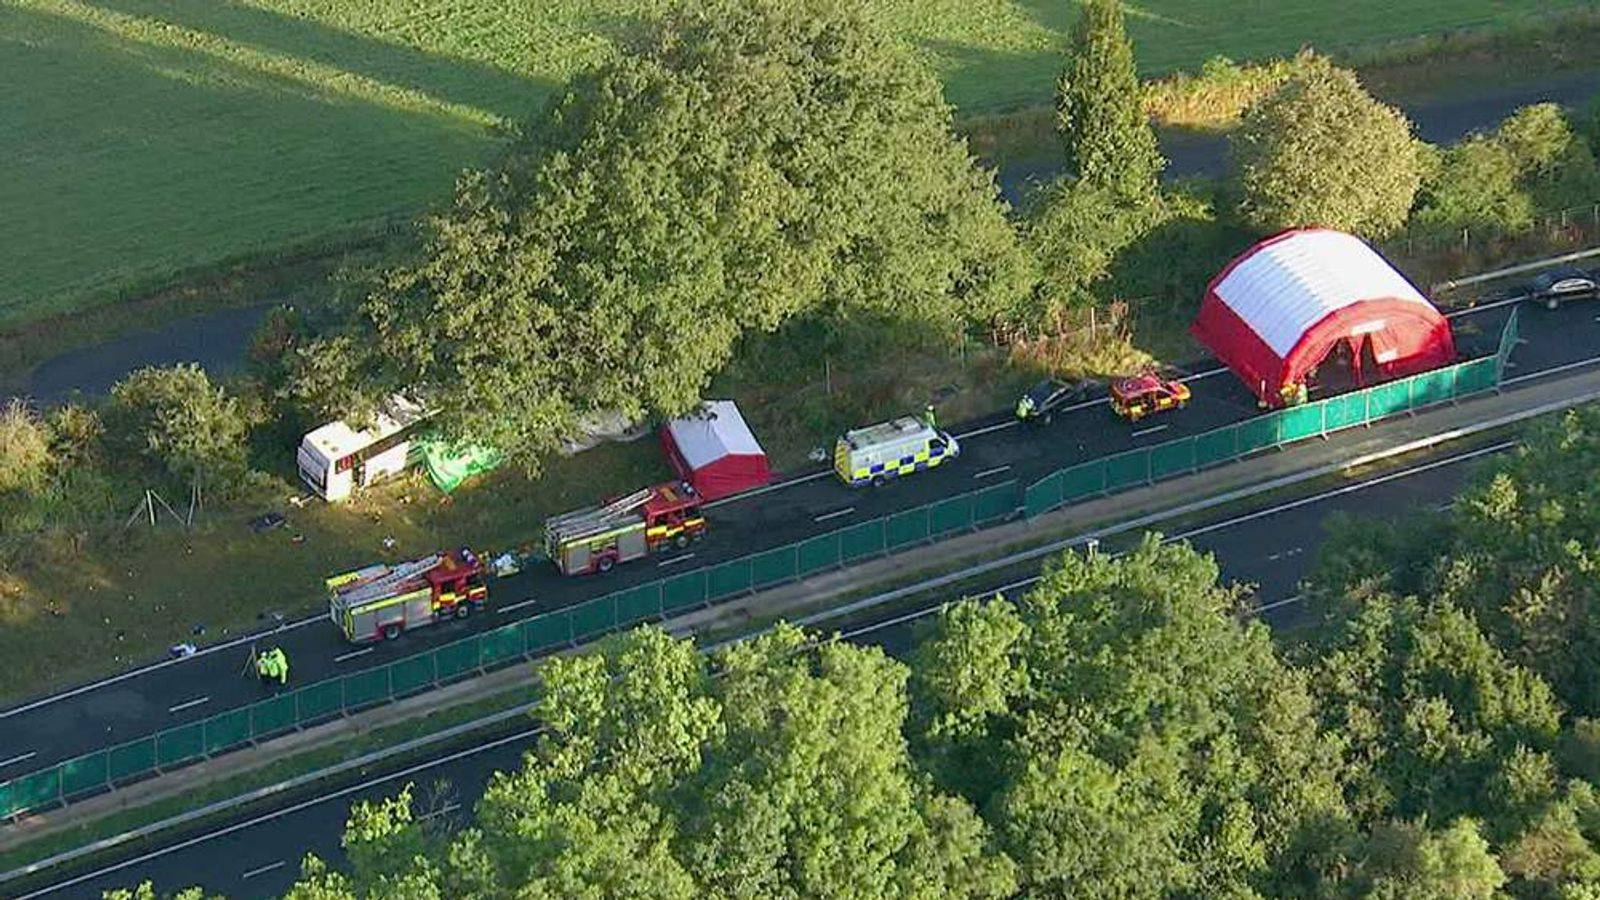 Three people have been killed and others seriously injured in a coach crash in Surrey.